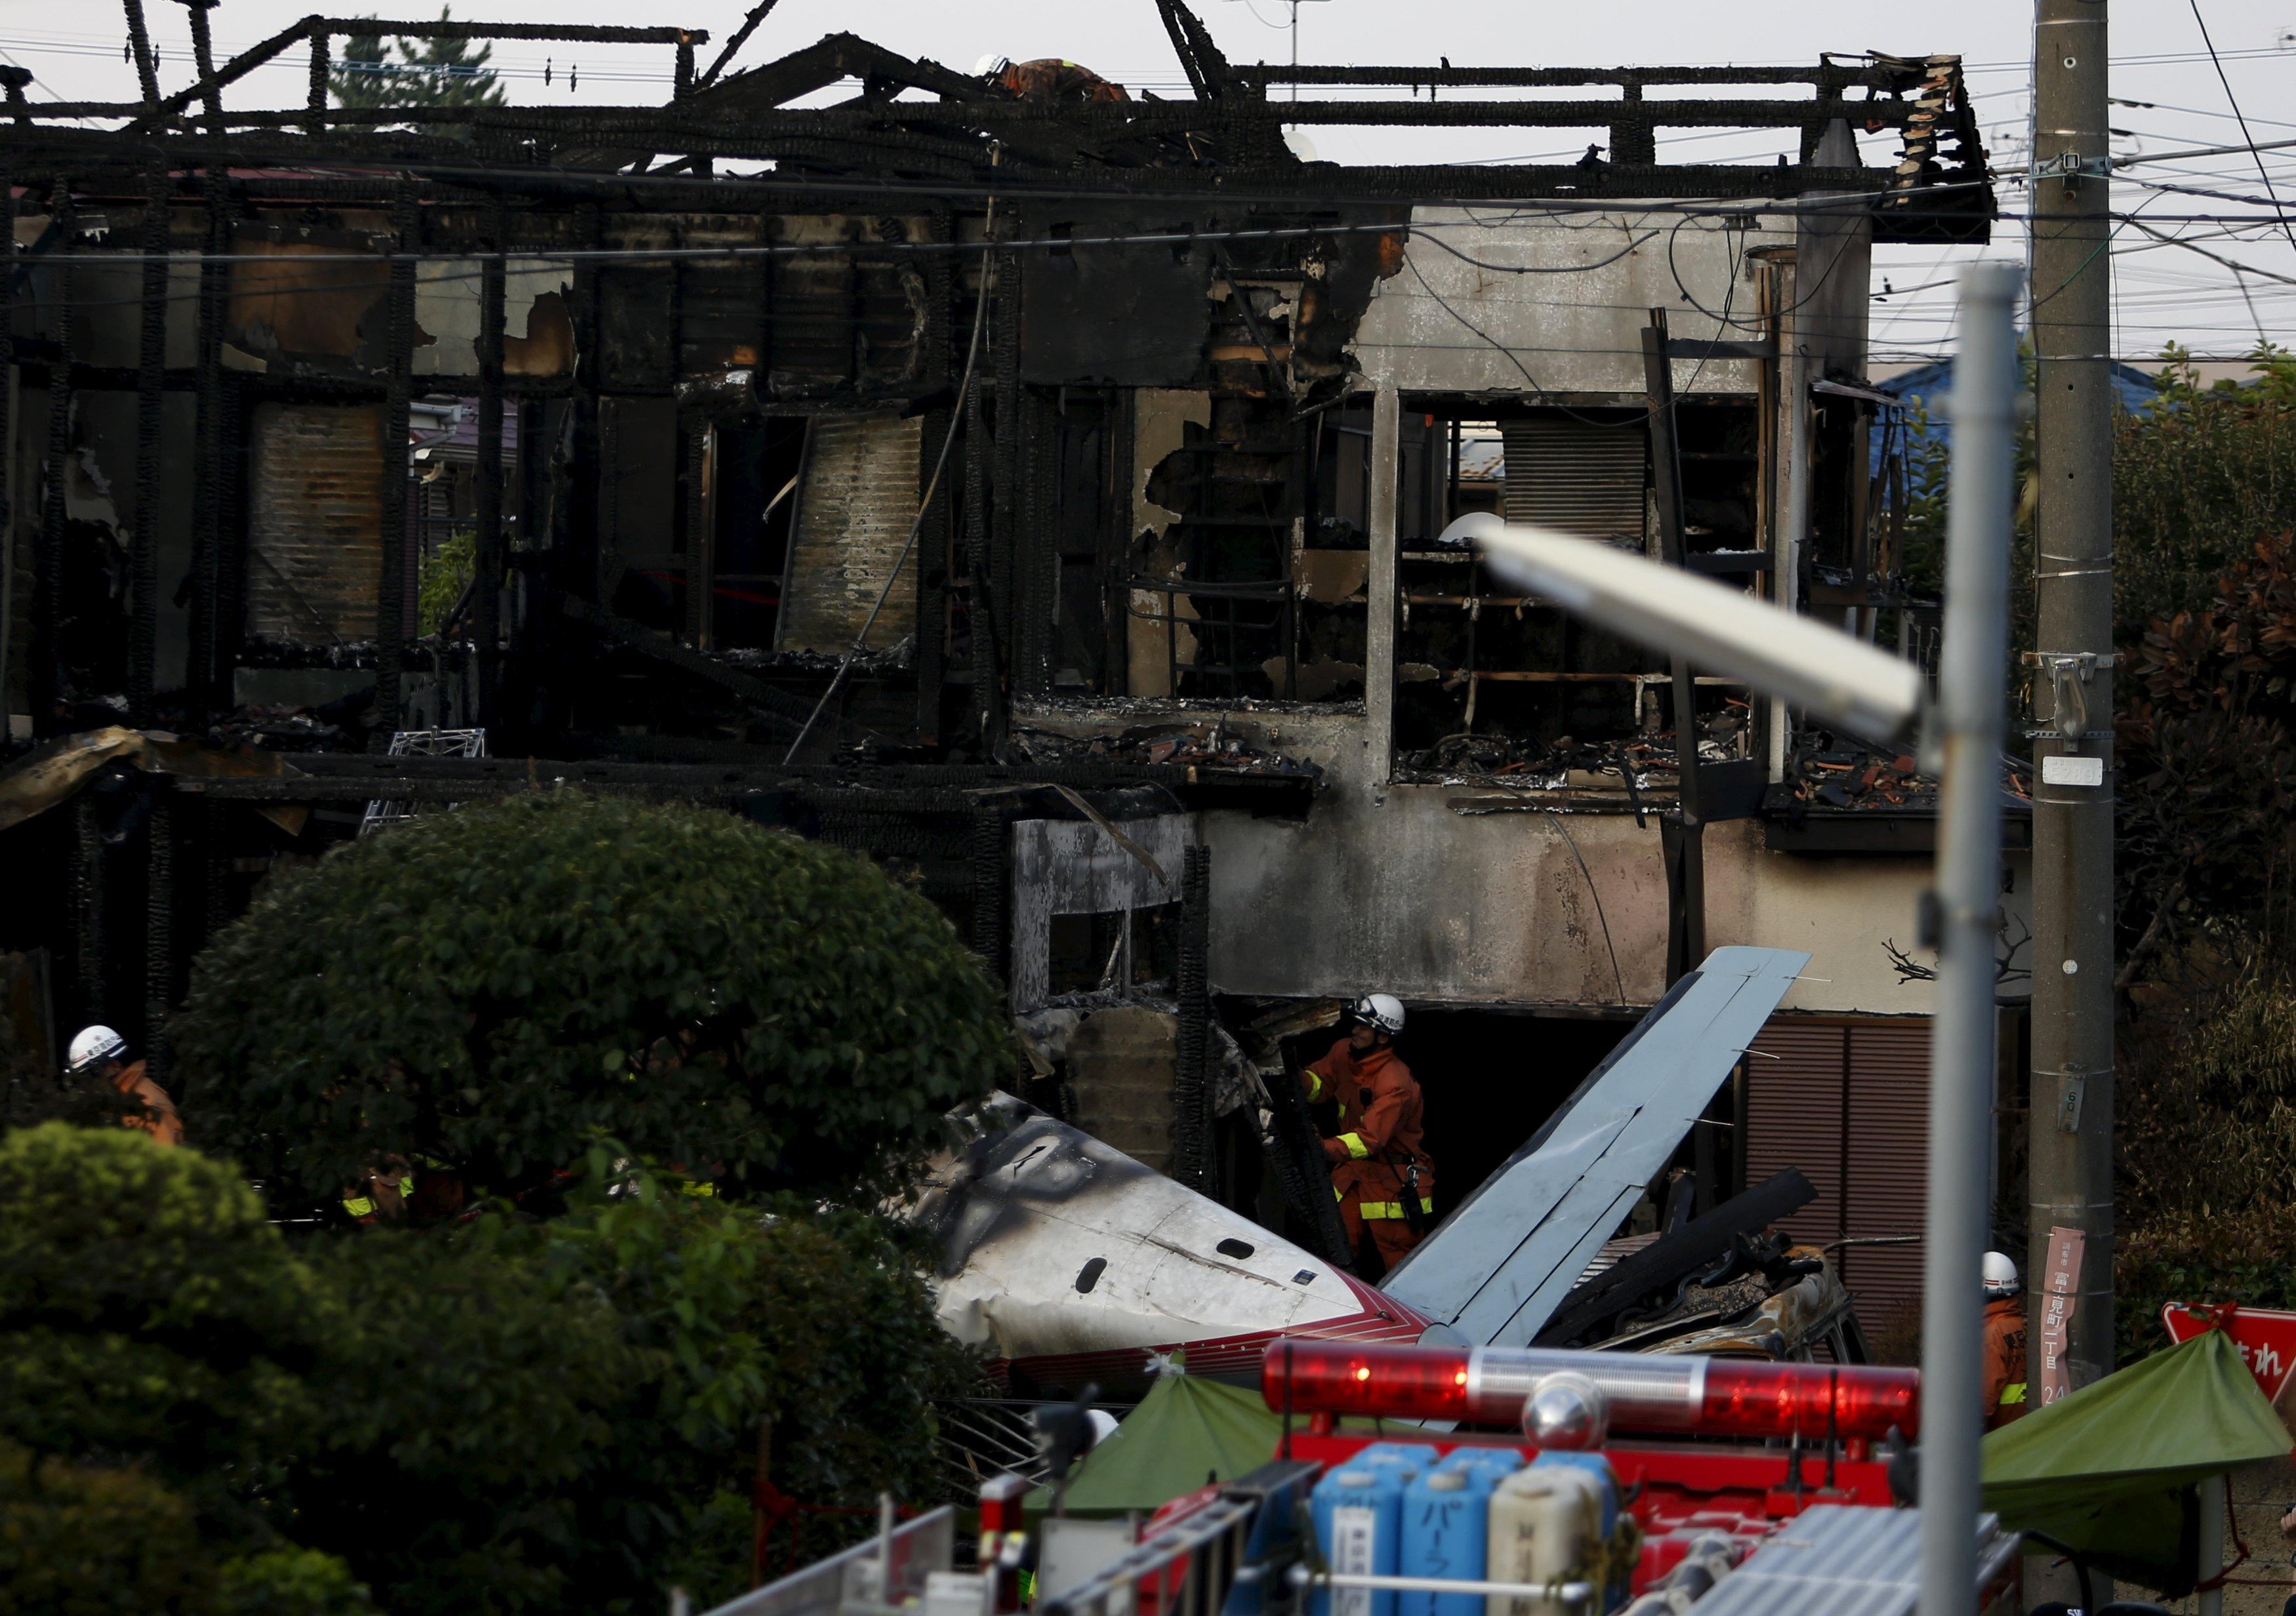 Firefighters remove wreckage and debris at the site where a light plane went down in a residential area and burst into flames, in Chofu, outskirt of Tokyo, July 26, 2015. Three people were killed when a small airplane crashed into a residential area of the Japanese capital, Tokyo, on Sunday, public broadcaster NHK reported, setting fire to houses and cars. REUTERS/Yuya Shino